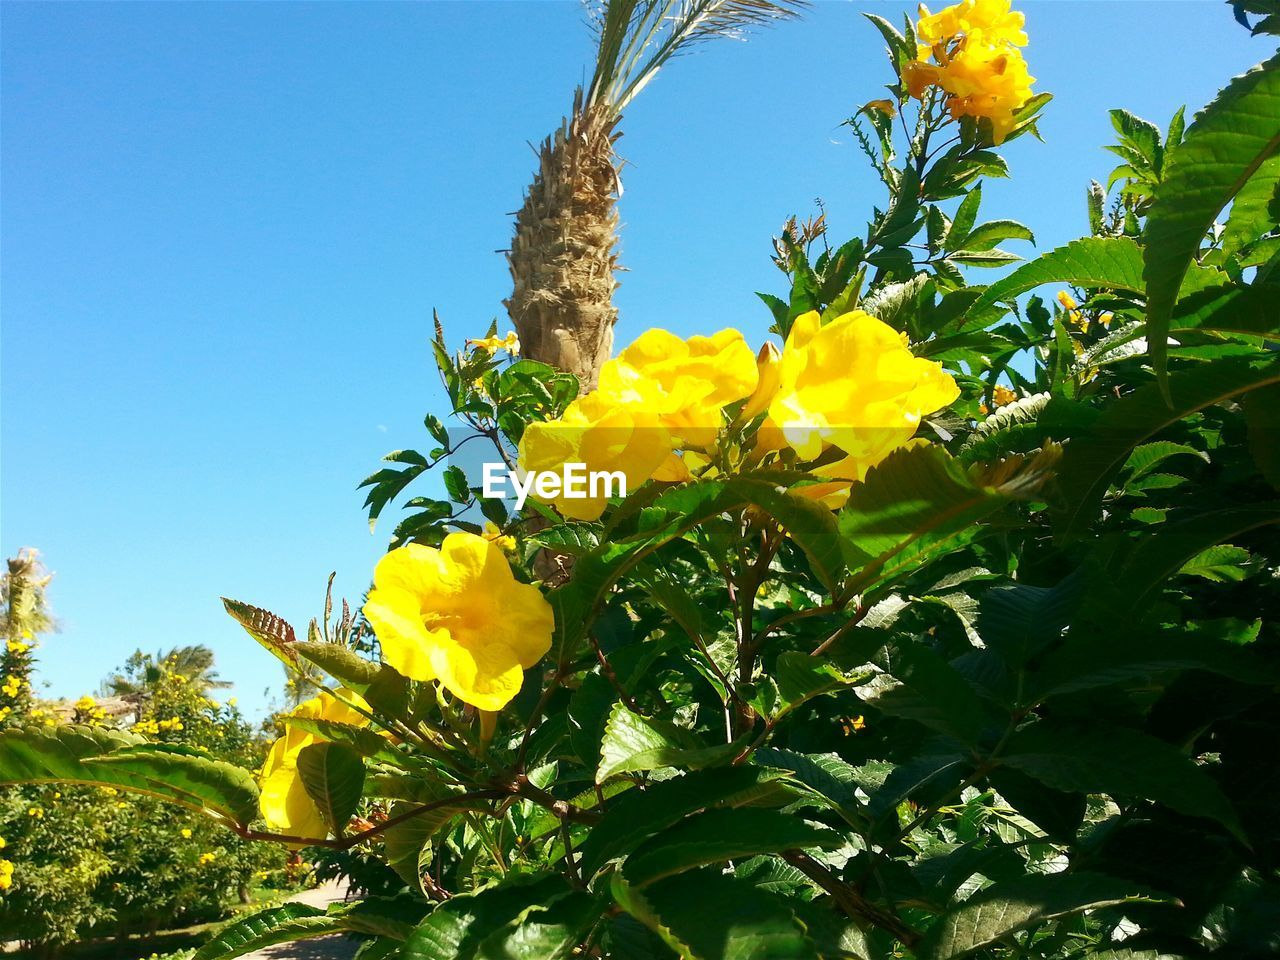 flower, growth, yellow, nature, plant, freshness, beauty in nature, leaf, green color, low angle view, fragility, day, outdoors, no people, tree, clear sky, flower head, blooming, sky, close-up